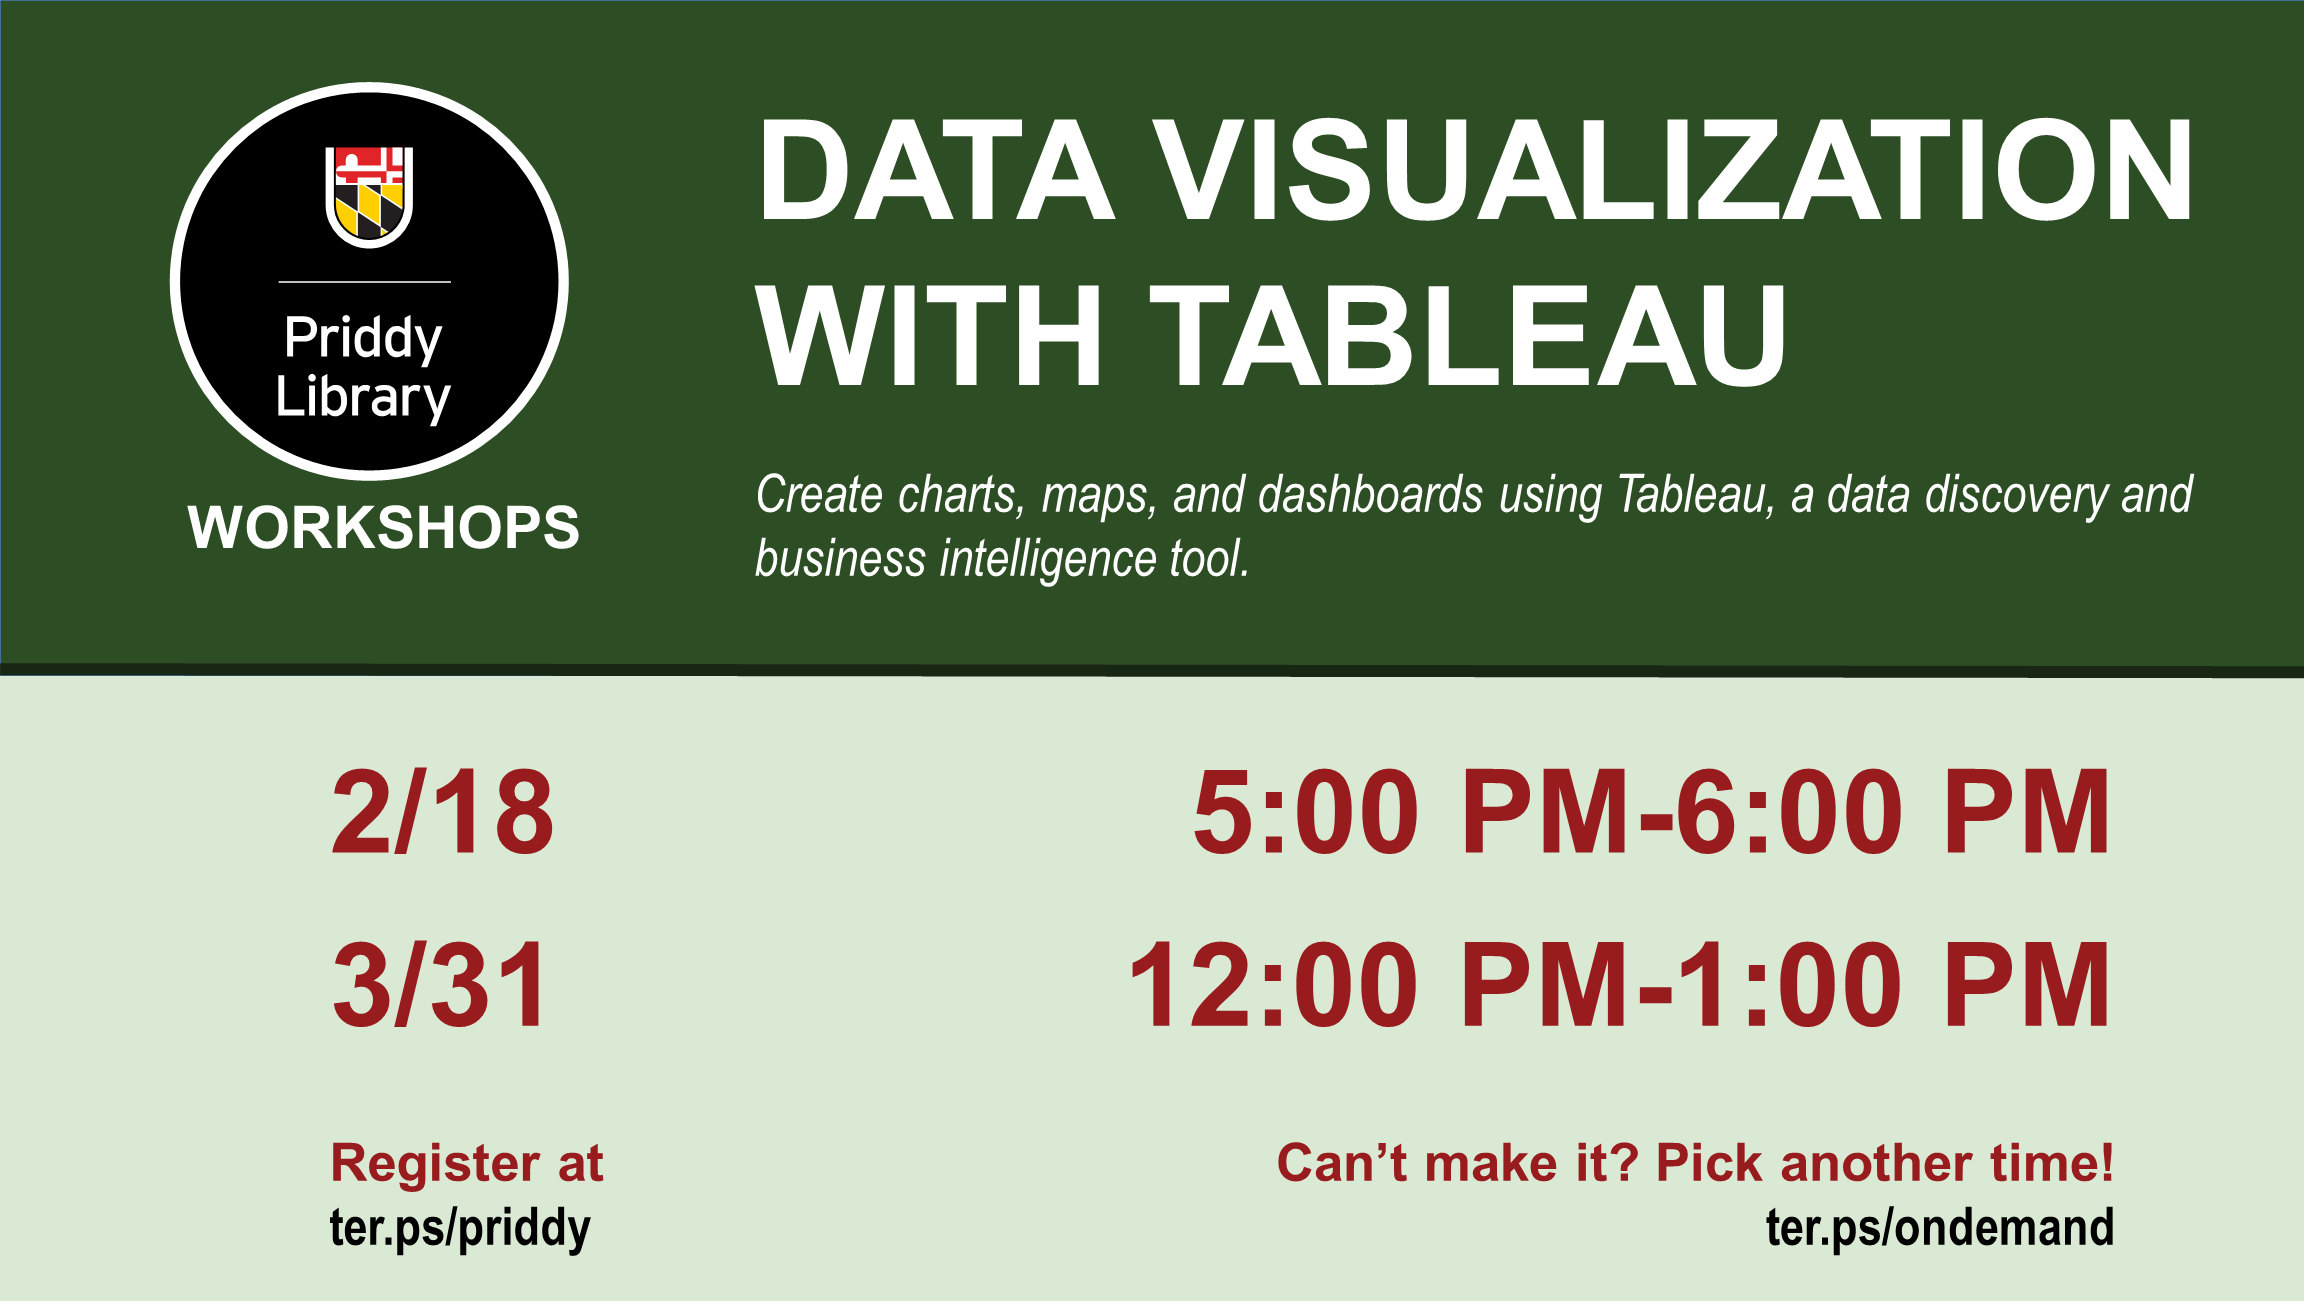 Data Visualization with Tableau Flyer